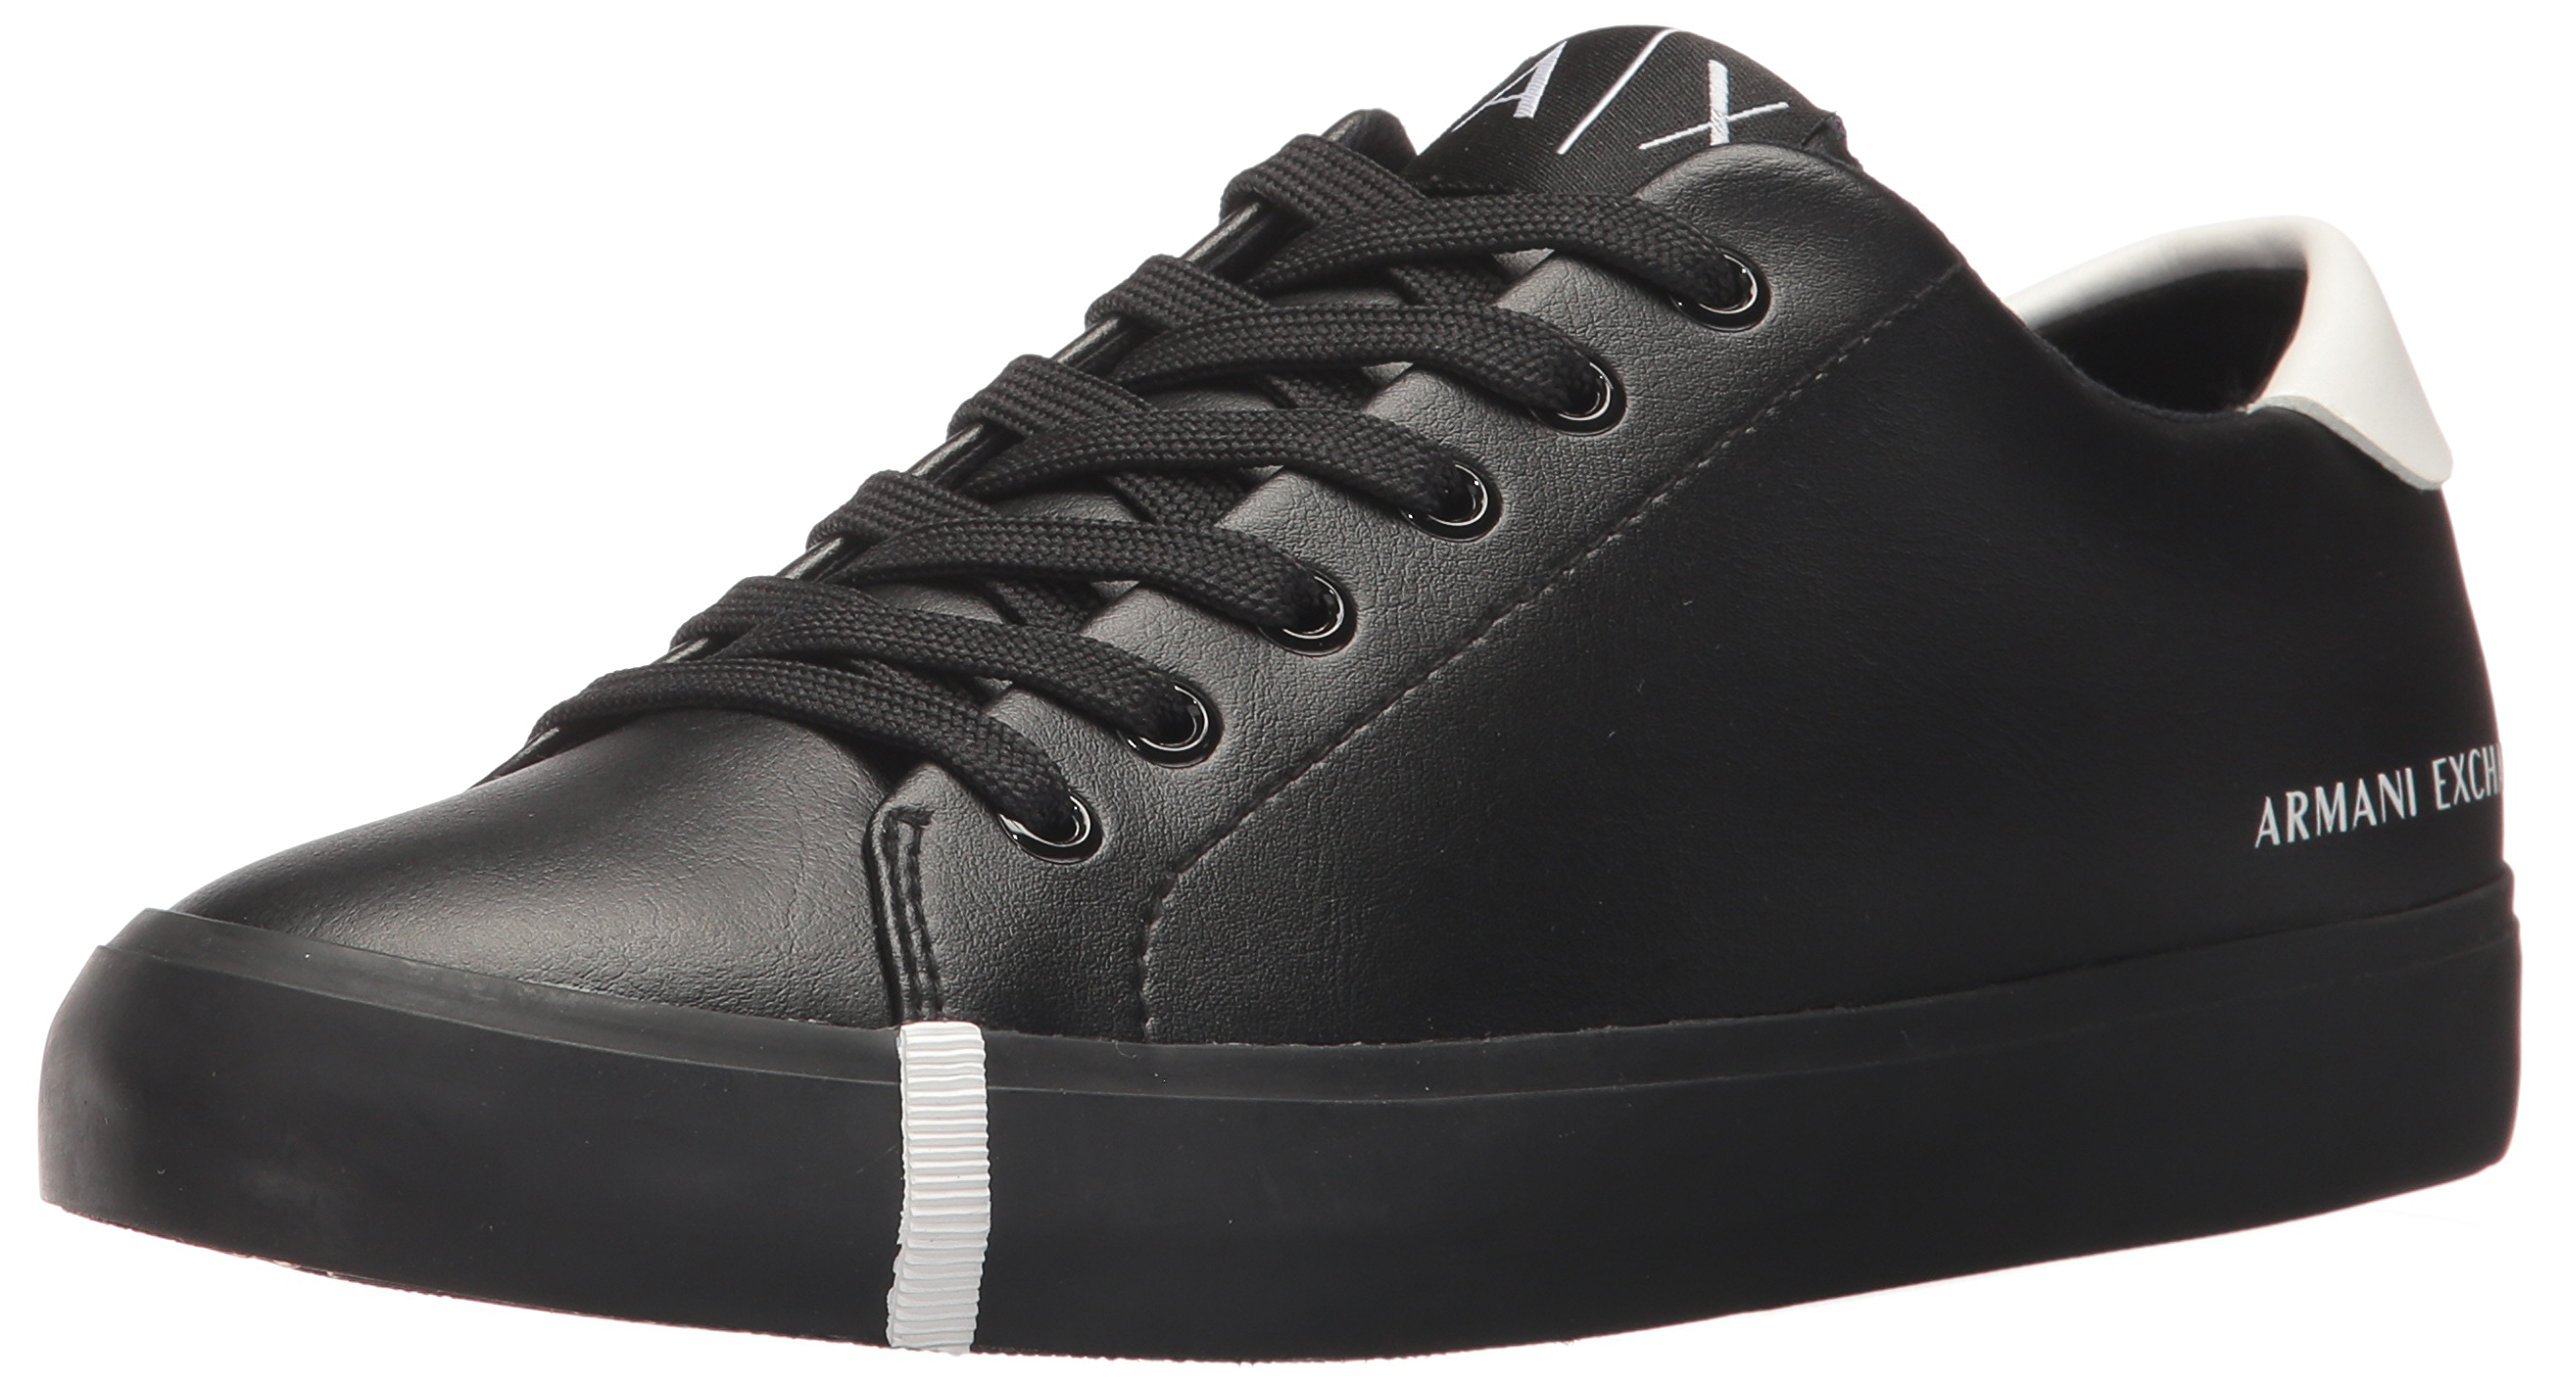 A|X Armani Exchange Women's Eco Leather Low Top Sneaker, Nero, 8 M US